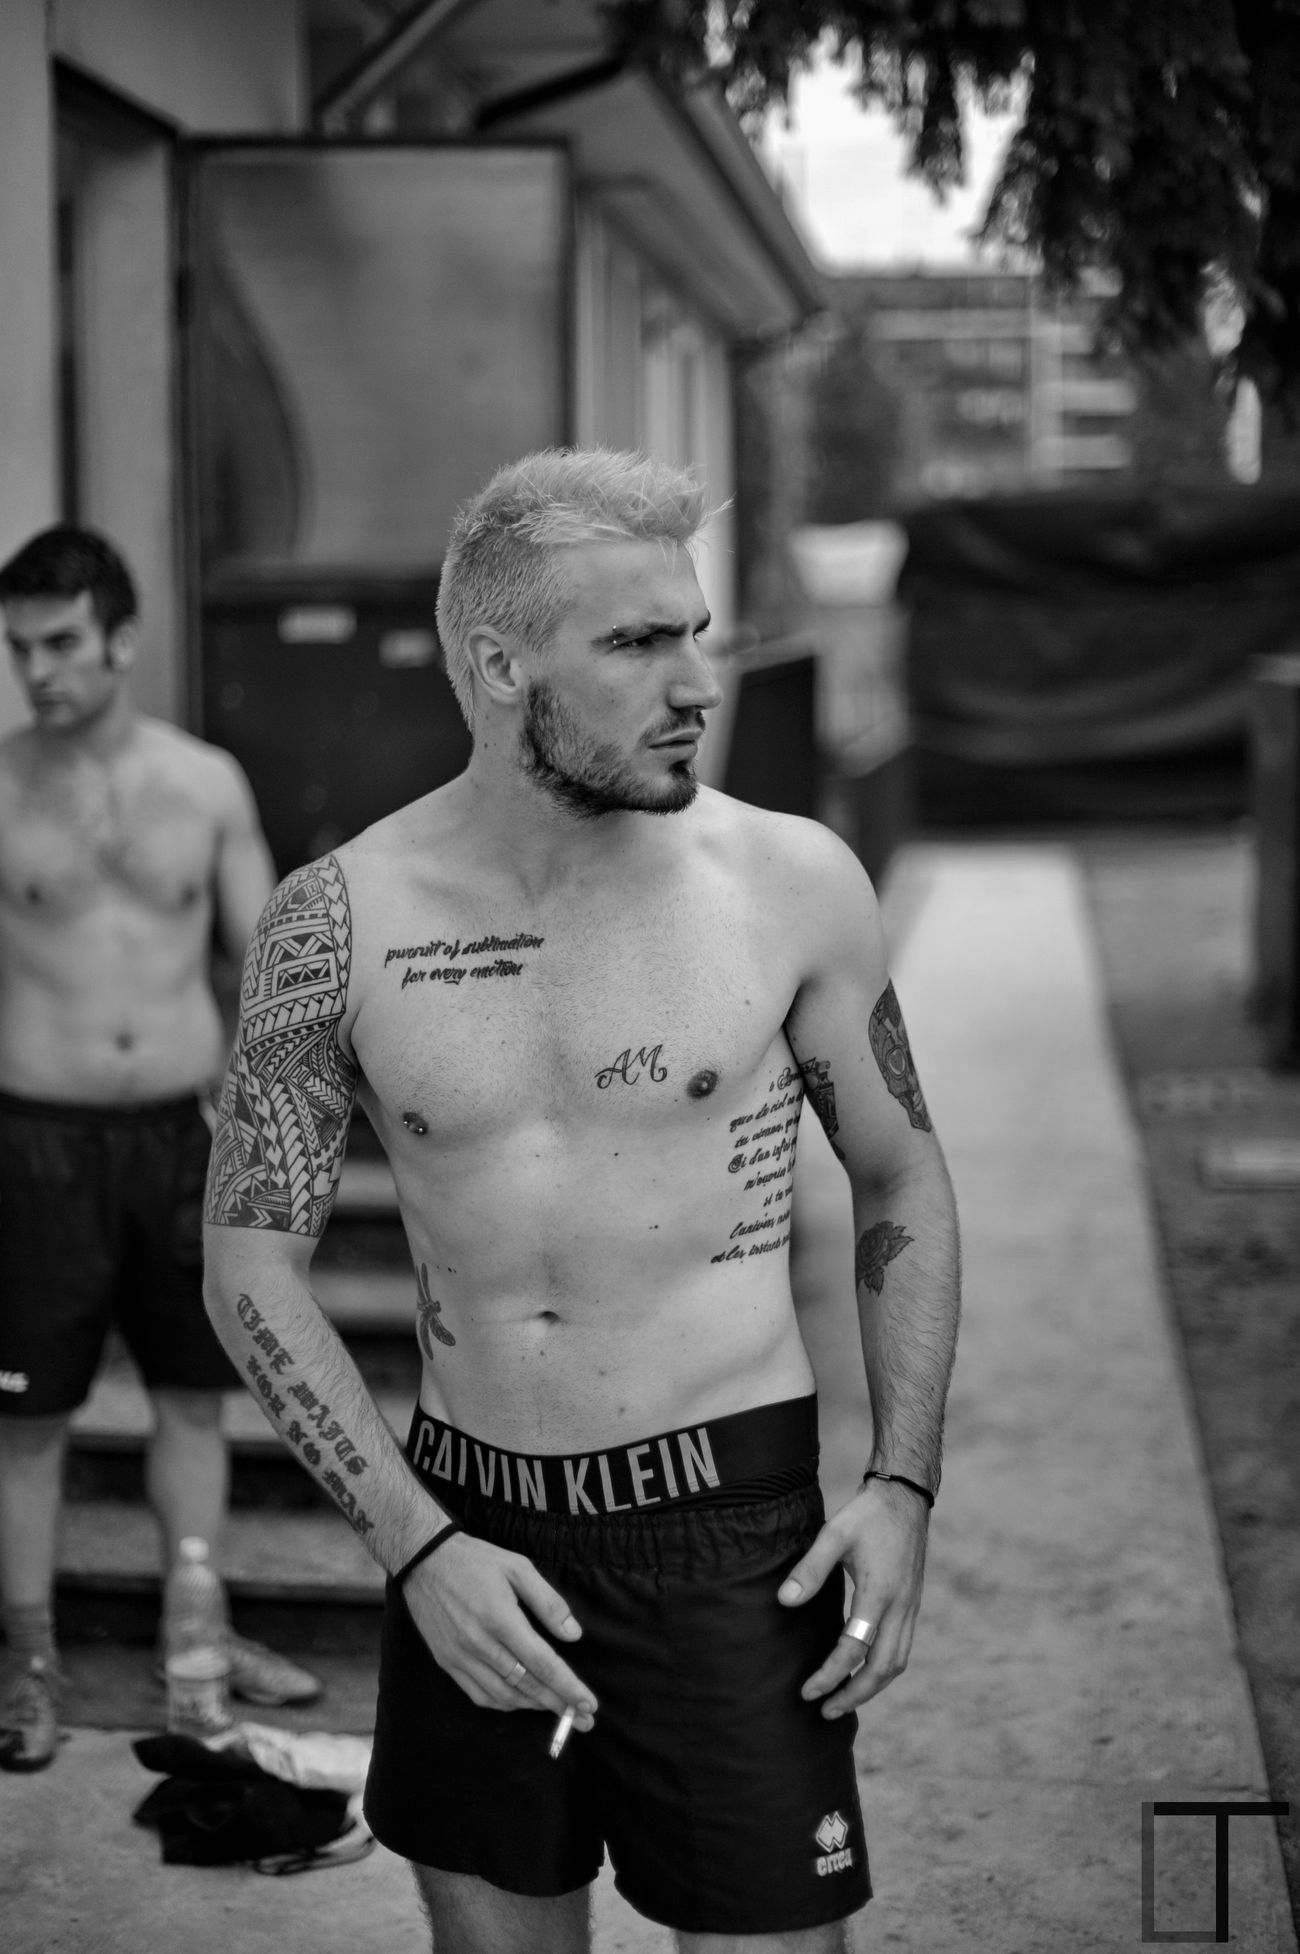 Alberto Friend Portrait Sports Sport Tattoo Tattooed Blonde Hair Dye Fake Blonde Muscles Angry Face Cigarette  After Match  After Sport Tattoos Tattooman Tattoo Boy Tattoo ❤ Mexican Skull Tribaltattoo Tribal Tattoo SexyAsFuck Blackandwhite Sexyboy Piercing